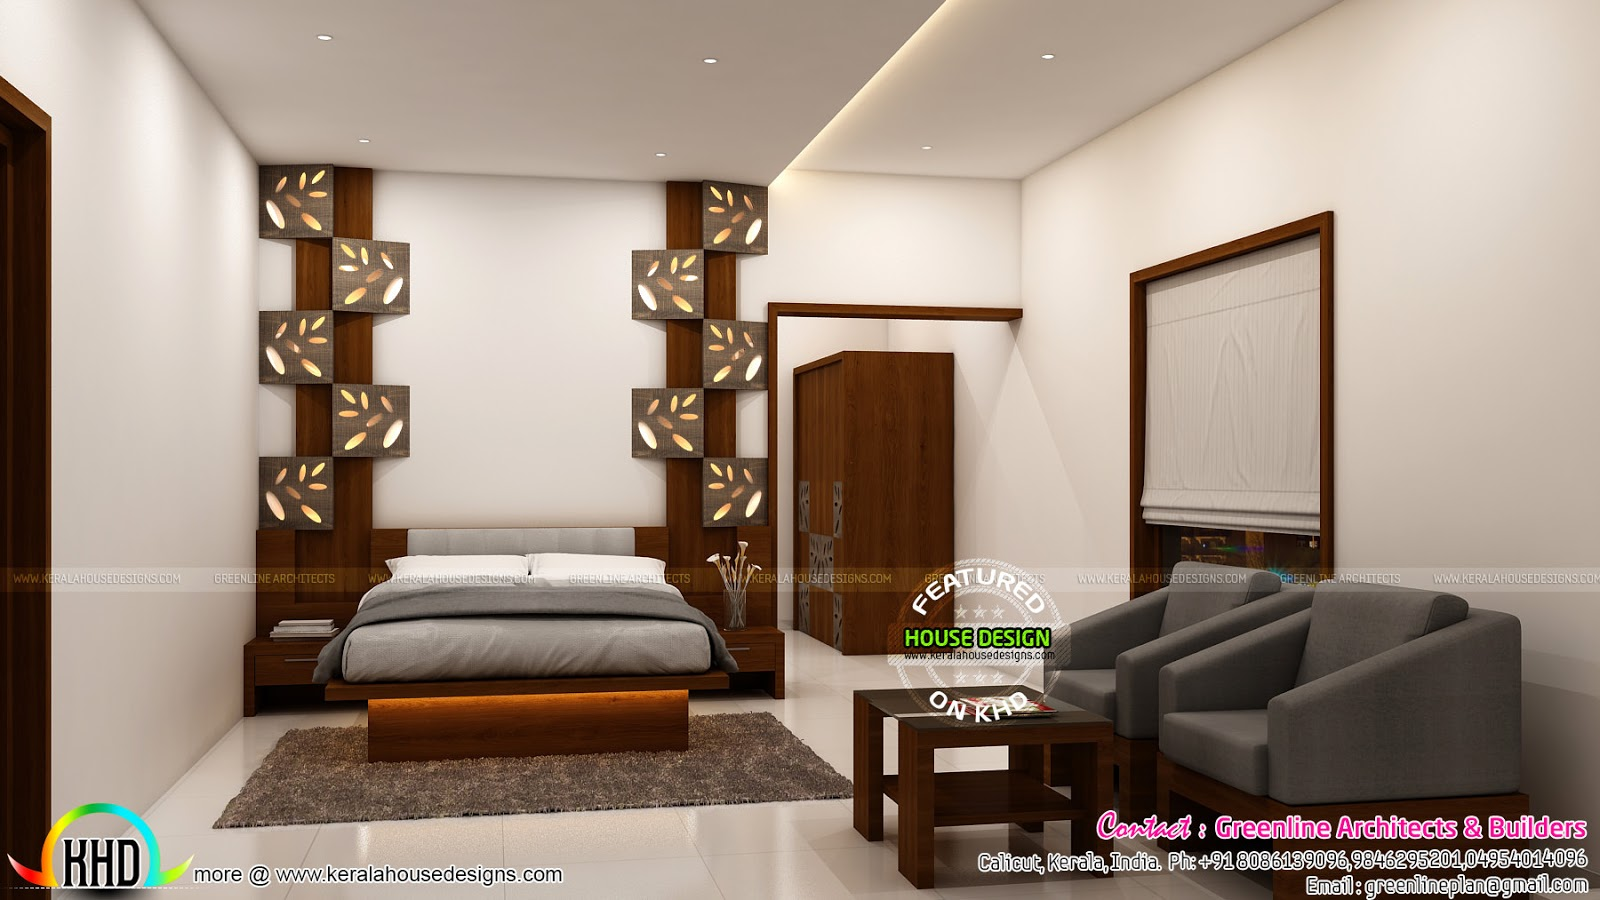 interior designs of master bedroom kerala home design 18964 | 02 master bedroom